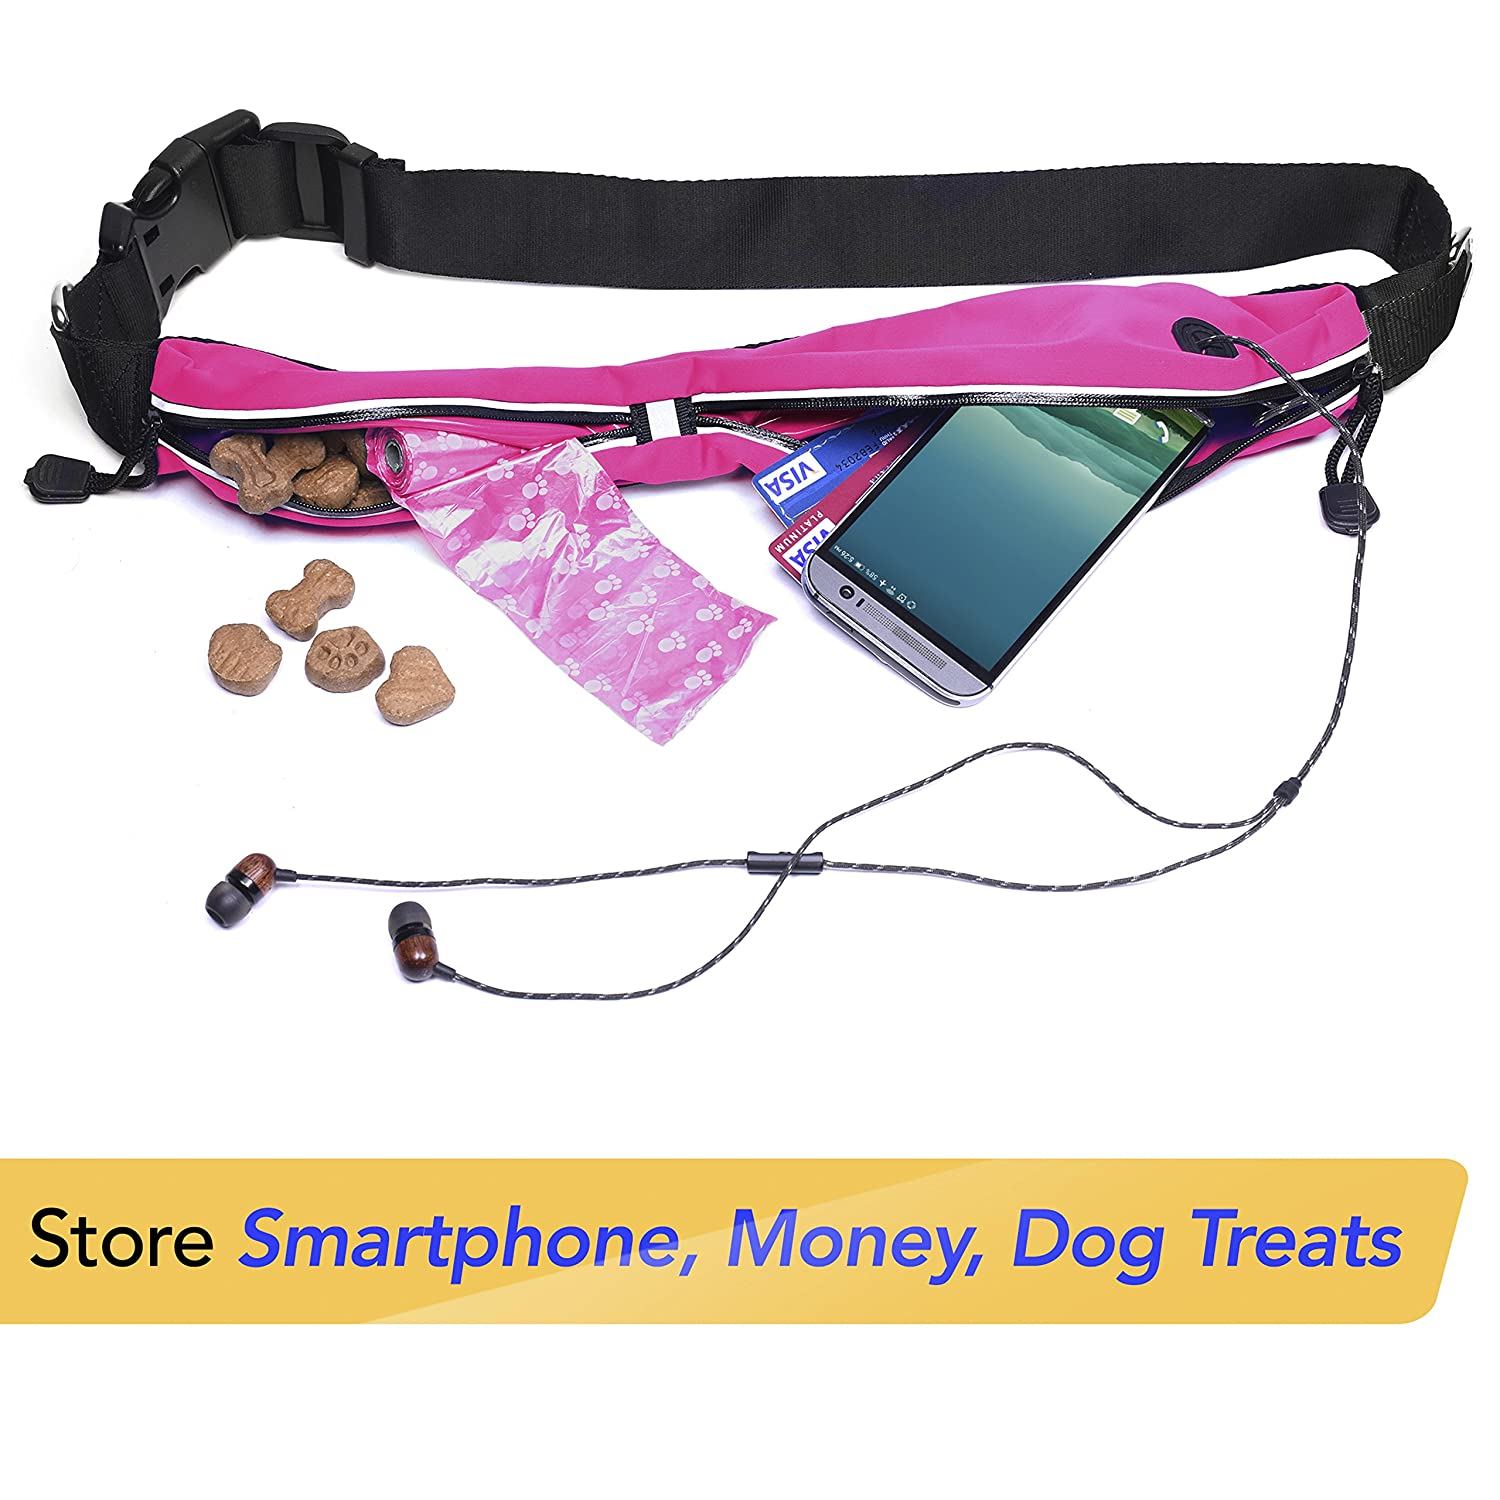 Smartphone And Money Pouch made our CampingForFoodies hand-selected list of 100+ Camping Stocking Stuffers For RV And Tent Campers!